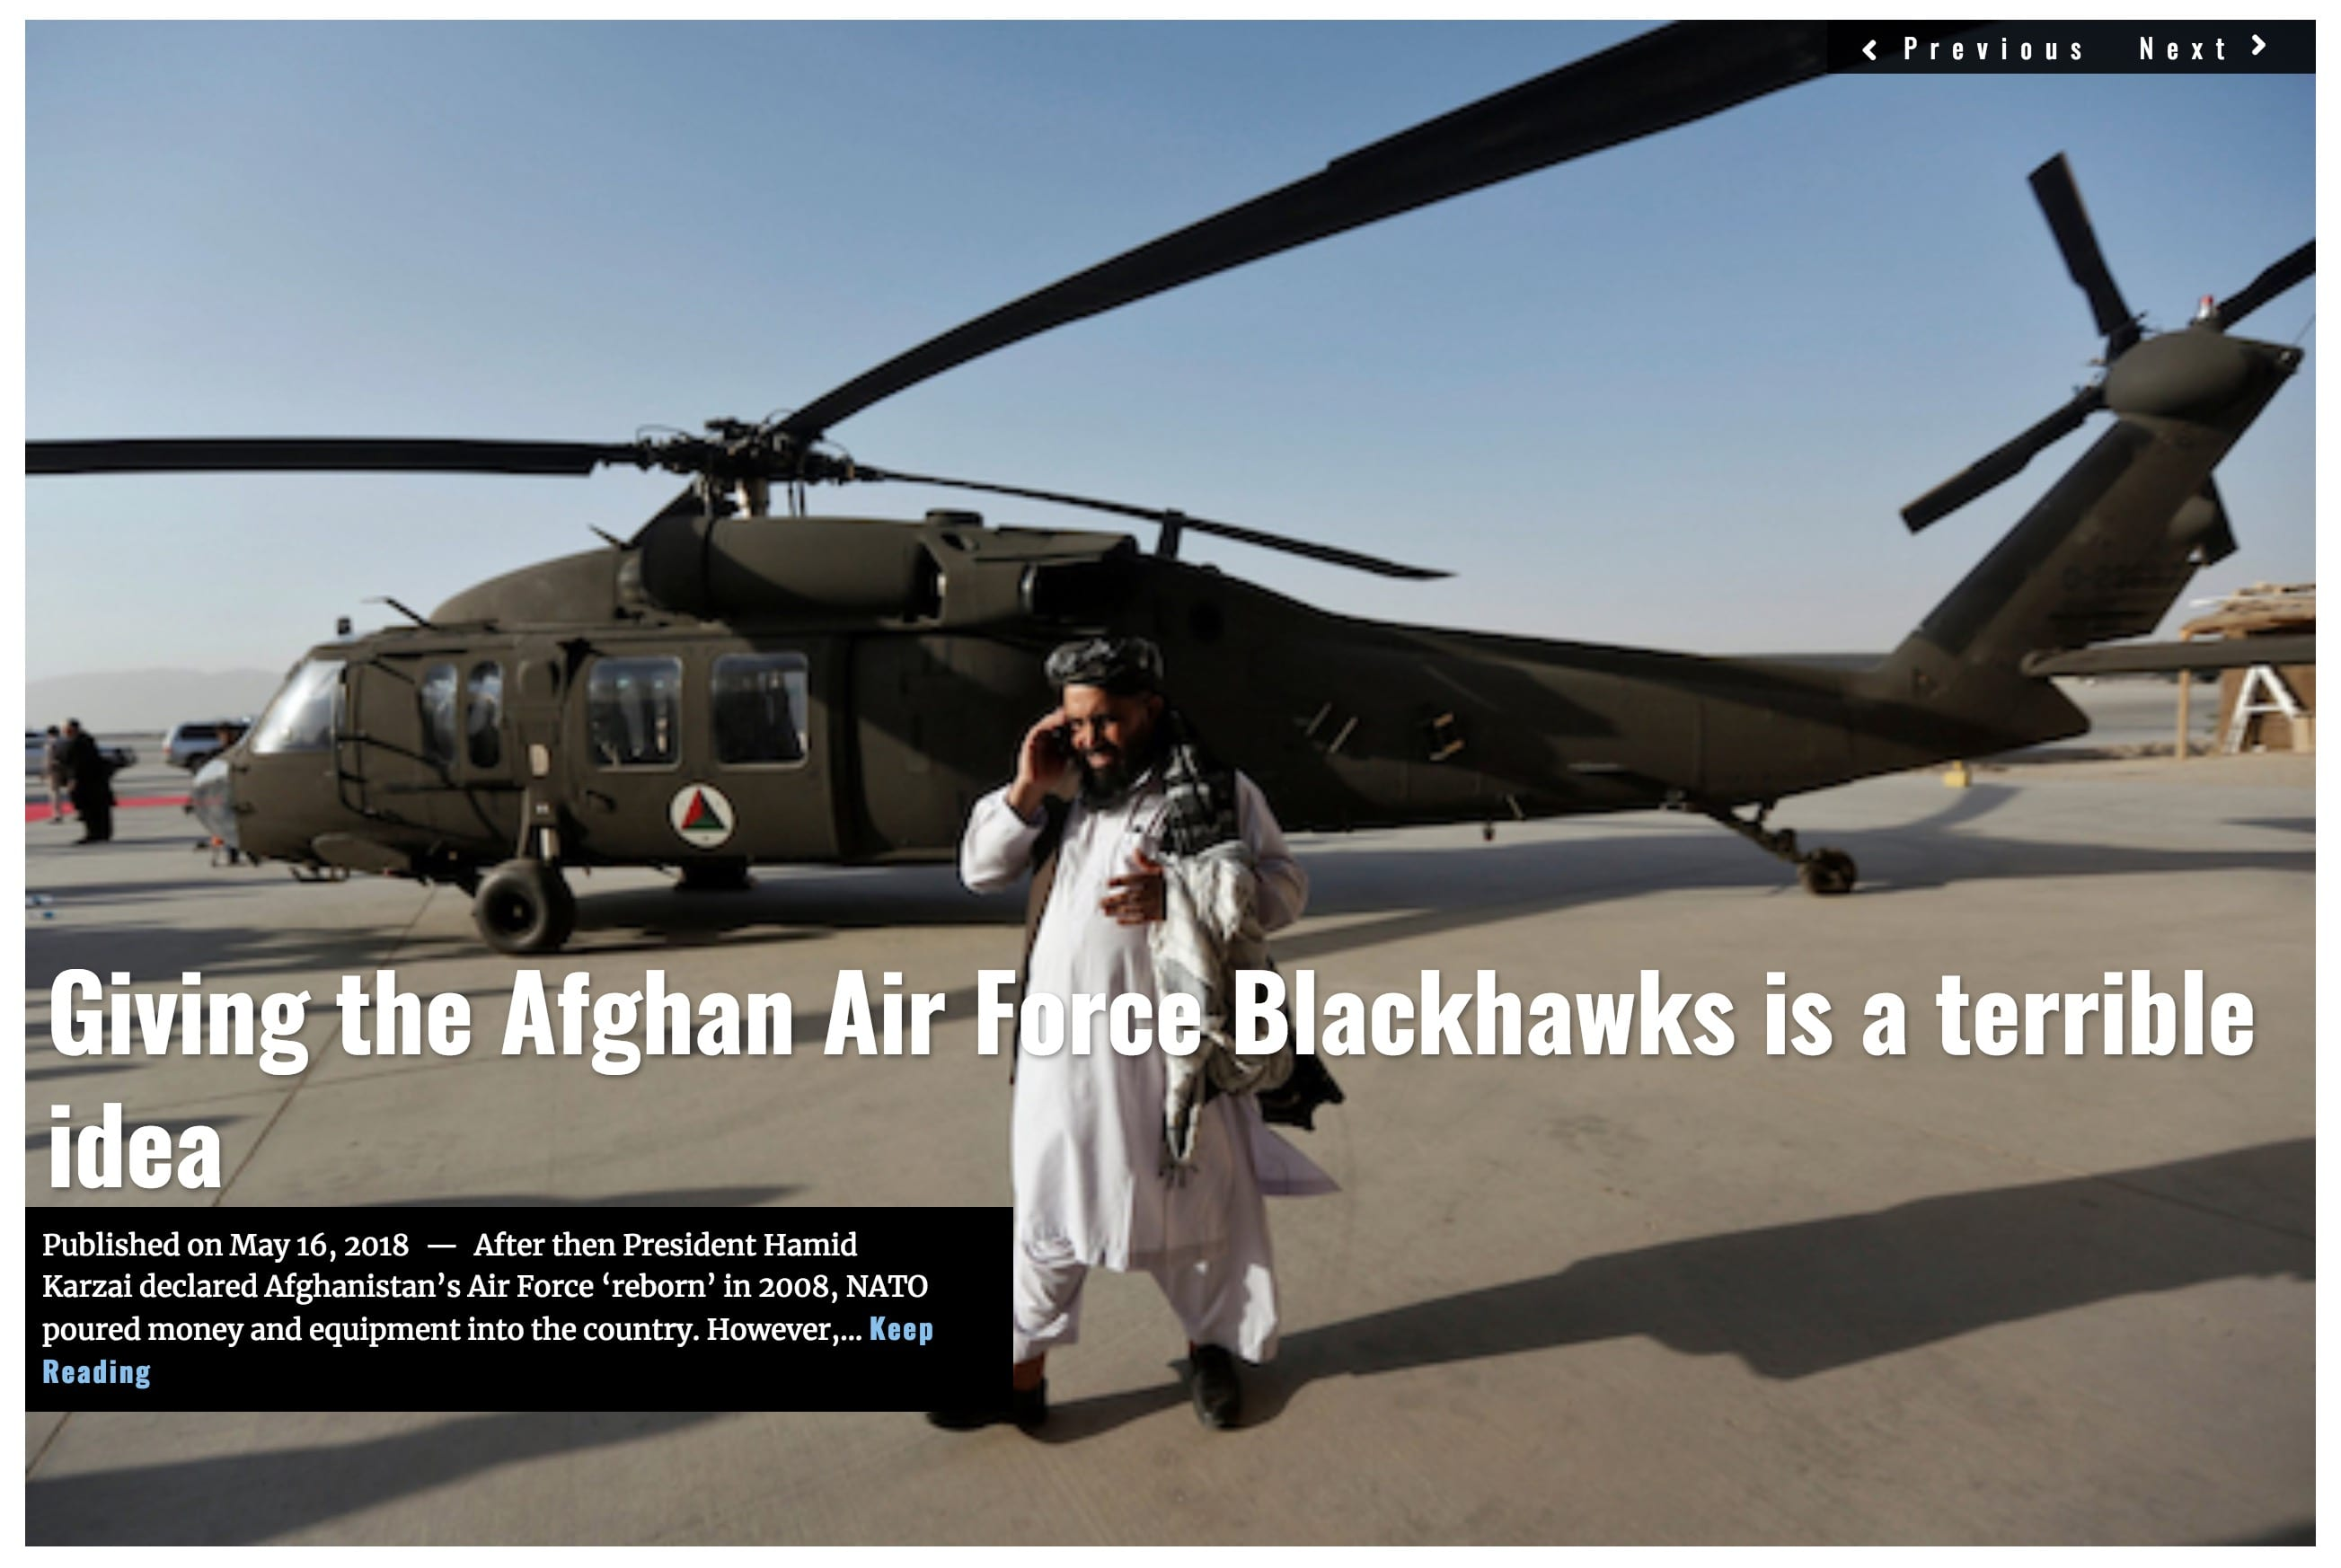 Image Lima Charlie News Headline Giving the Afghan Air Force Blackhawks is a terrible idea MAY 16 2018 (1)